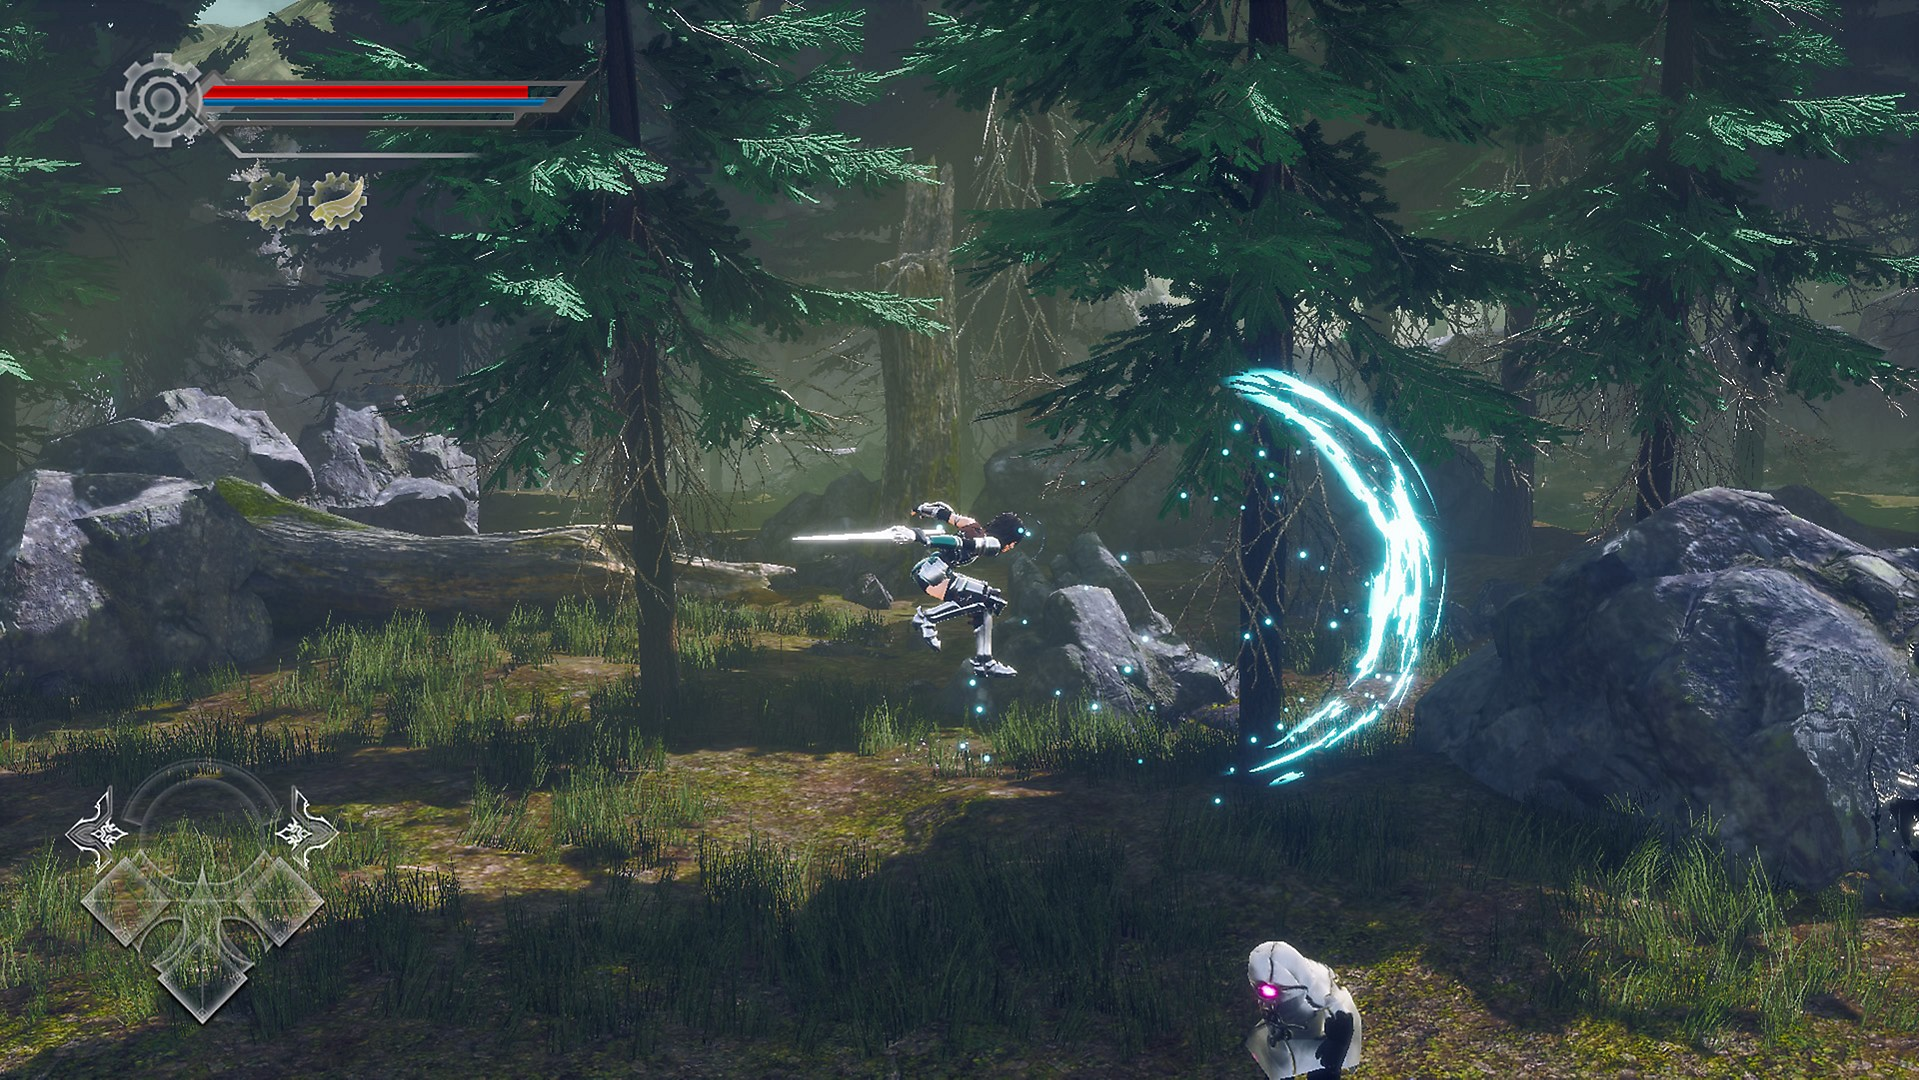 2D, Action, AeternoBlade II, AeternoBlade II Review, Corecell Technology, Nintendo Switch Review, Platformer, PQube, Puzzle, Rating 8/10, Role Playing Game, RPG, Switch Review